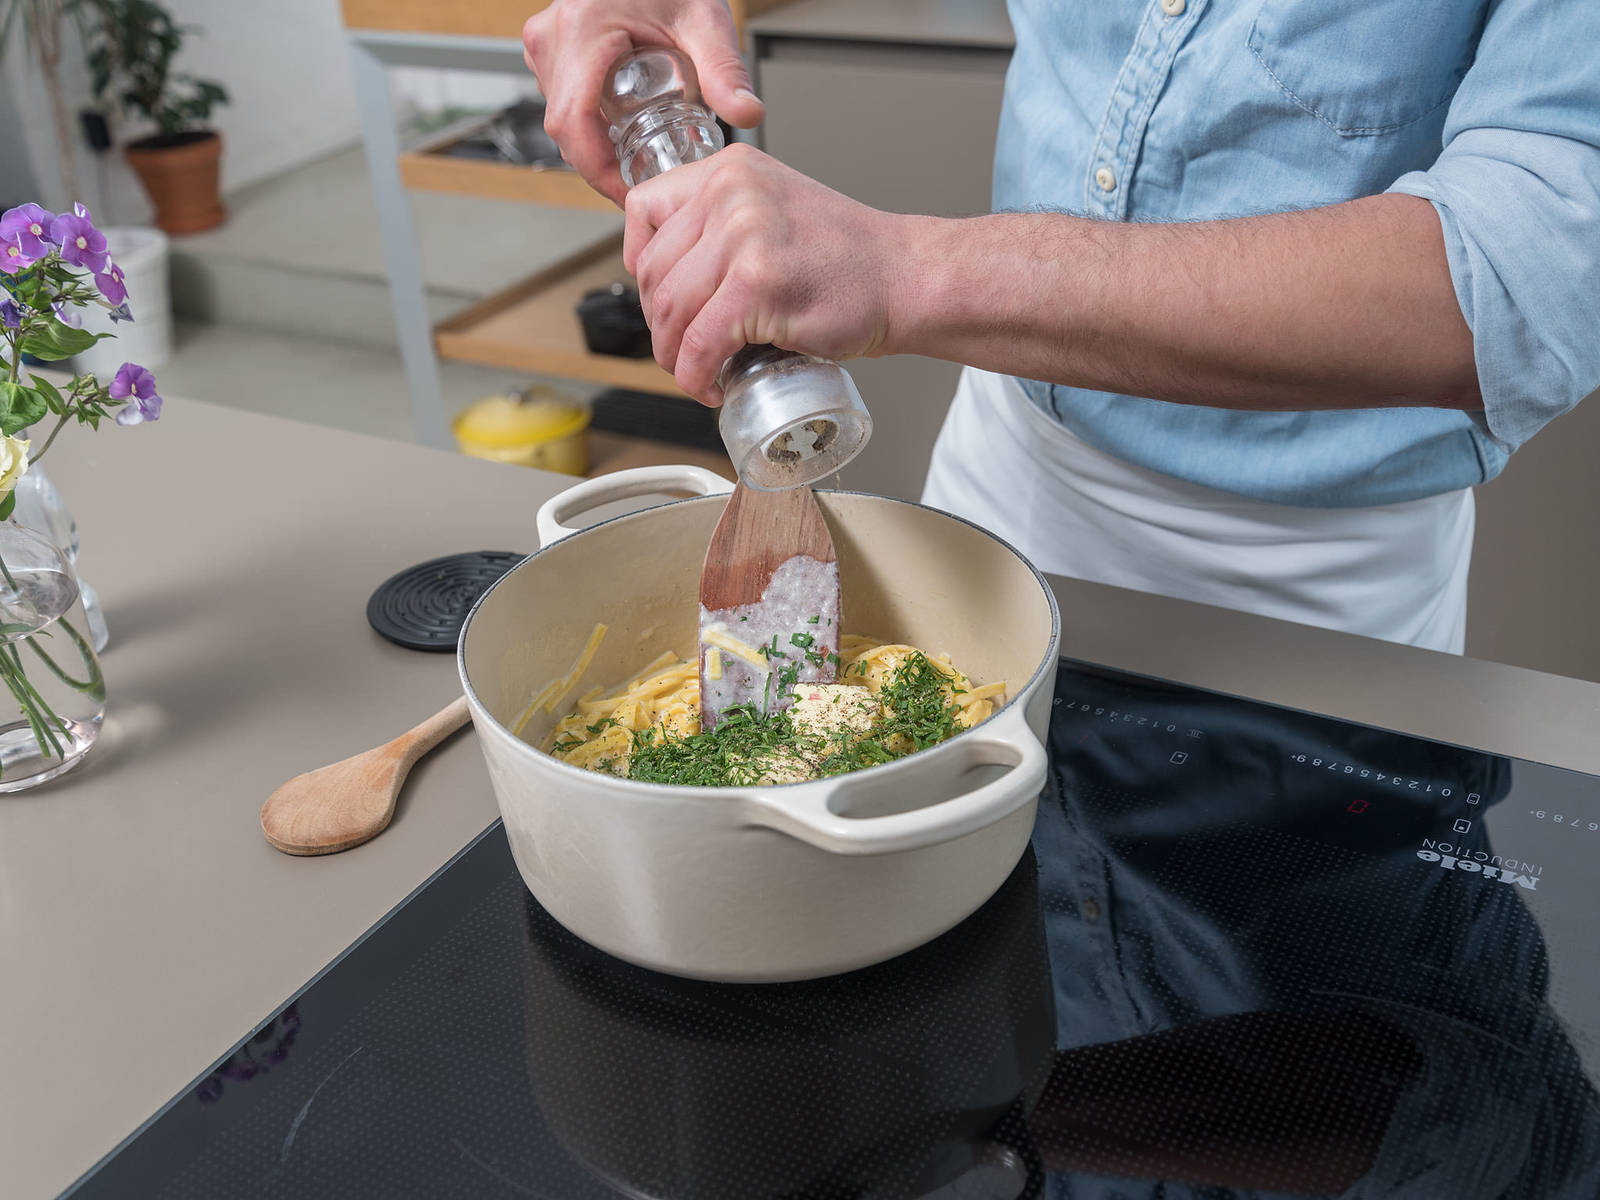 Bring water to a boil. Add salt and fettucine and cook until al dente. Drain cooked fettucine and add to the cream sauce. Toss to combine. Put the saucepan back on the heat, add chopped parsley and butter, and toss again to coat.